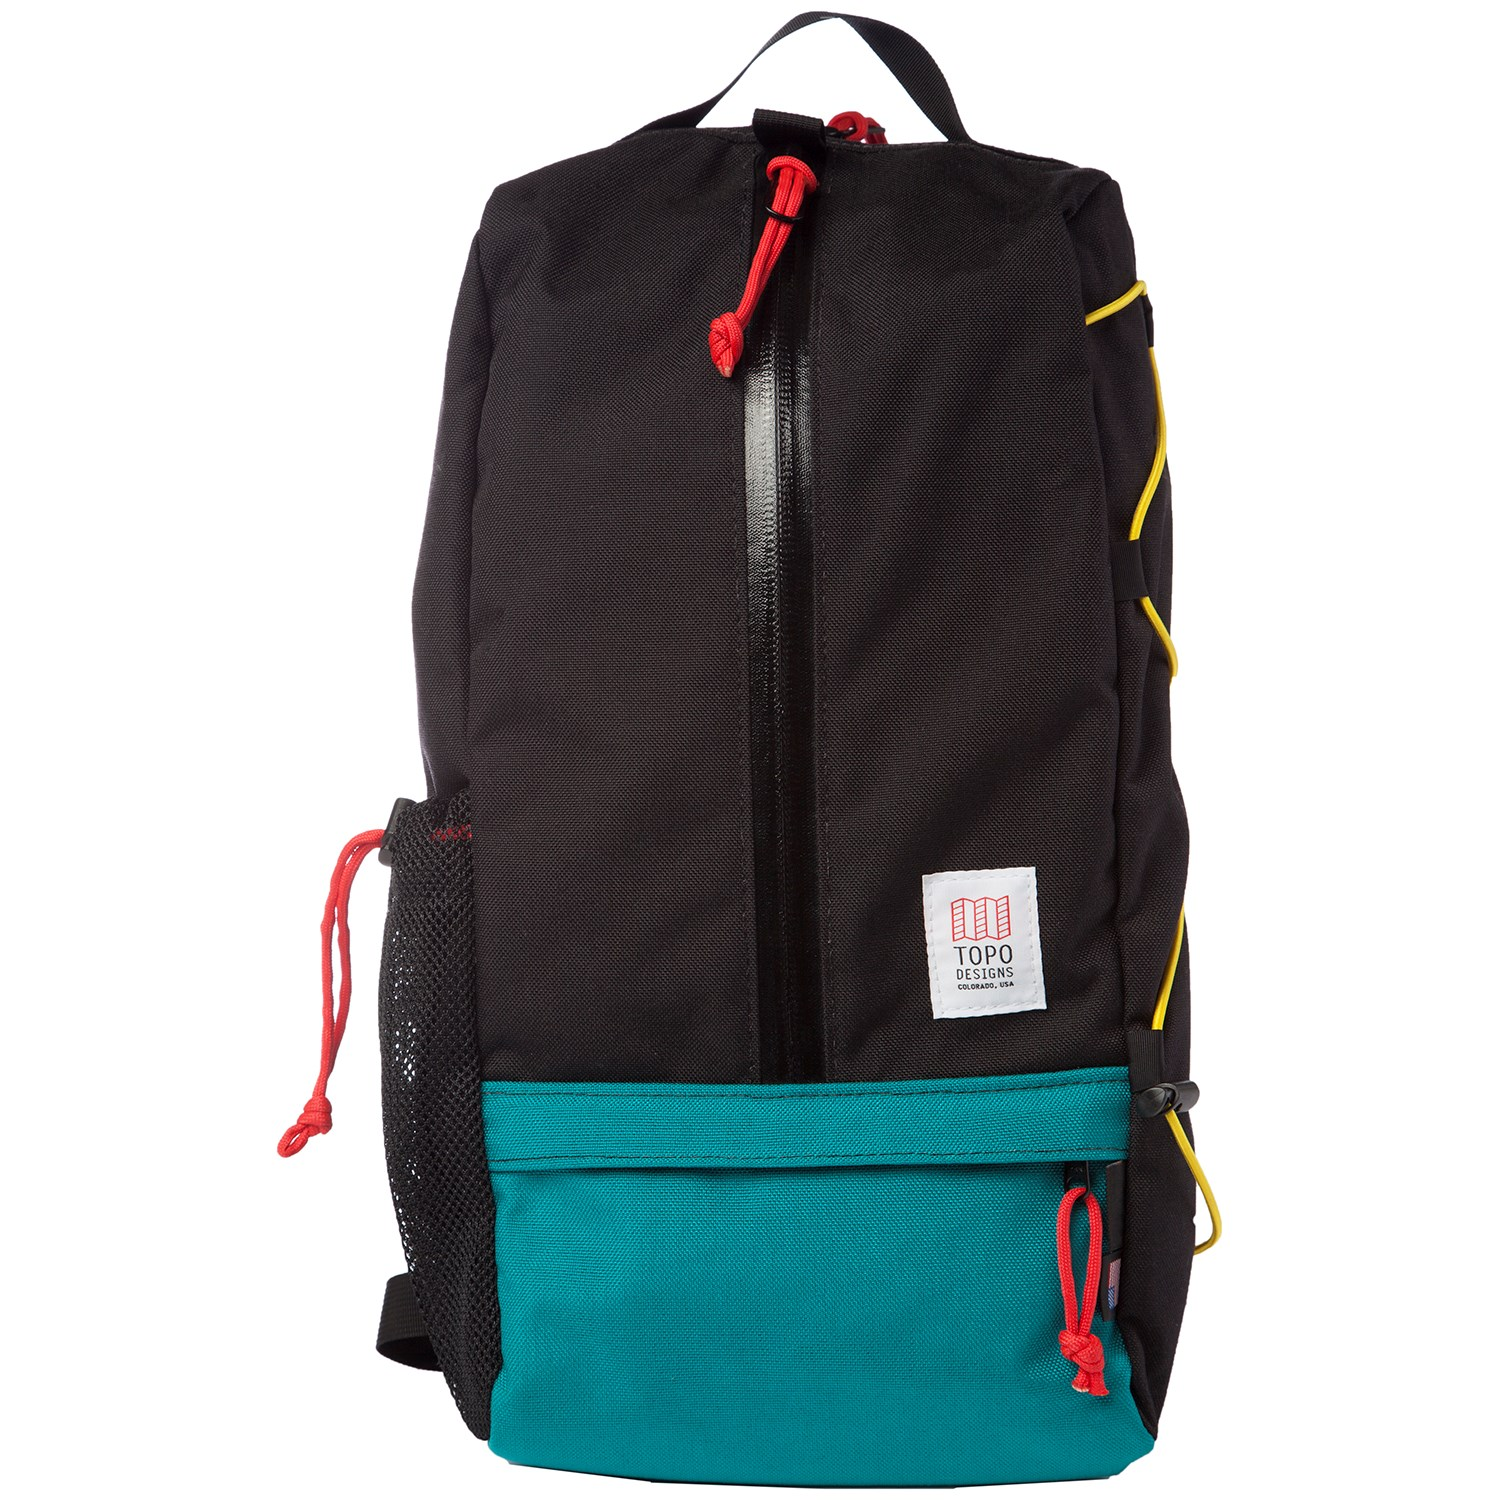 Topo Designs - Bags, Backpacks & More